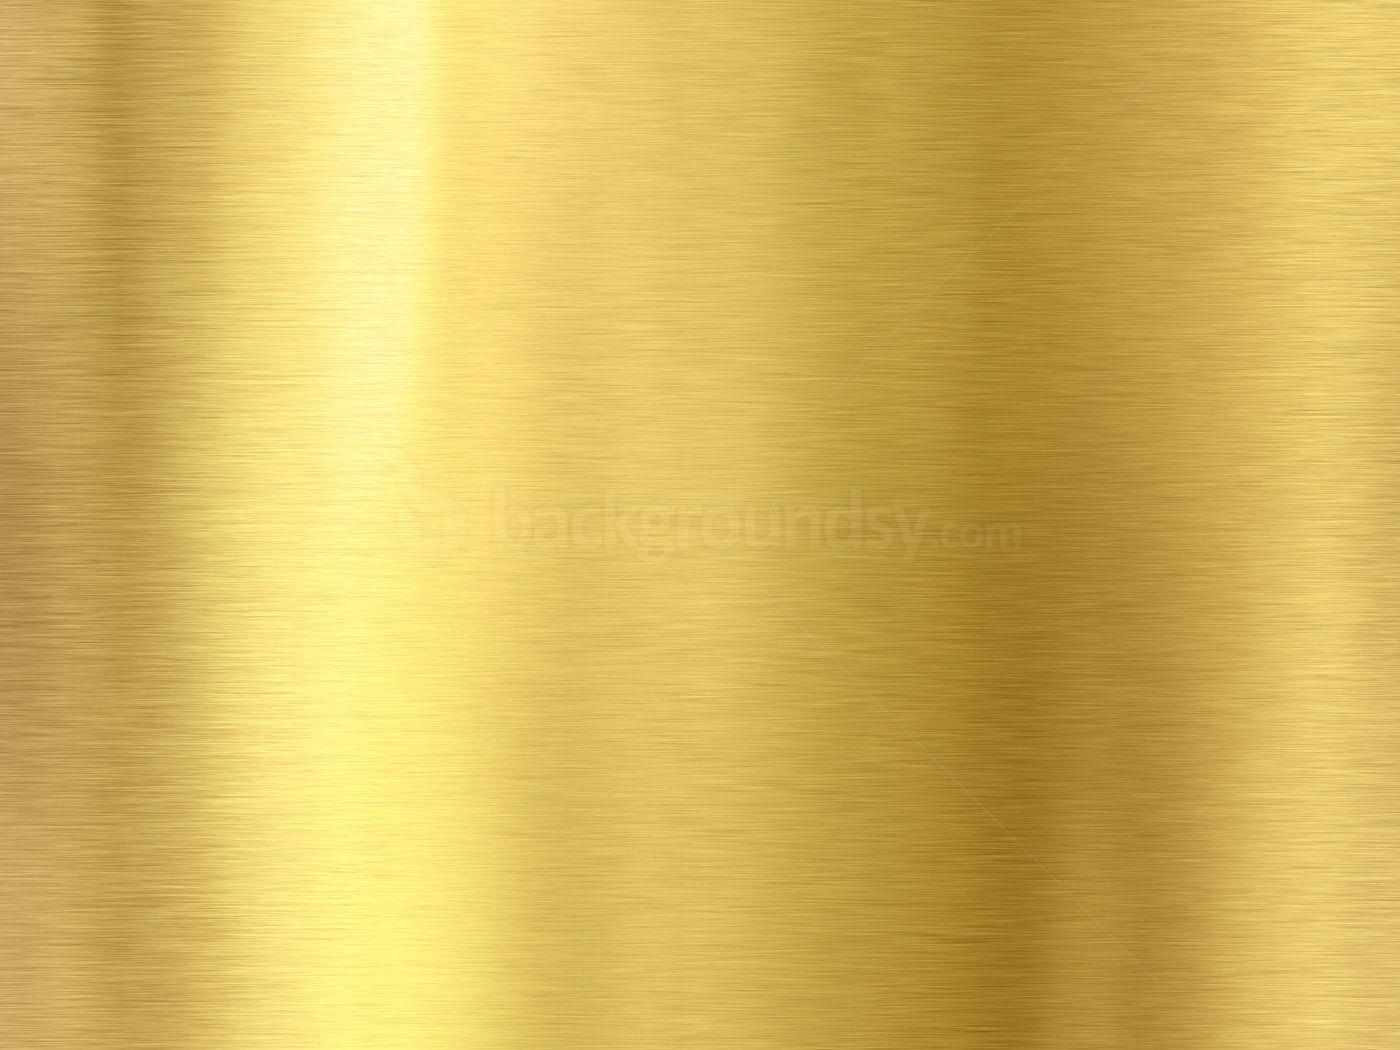 Gold silver wallpaper